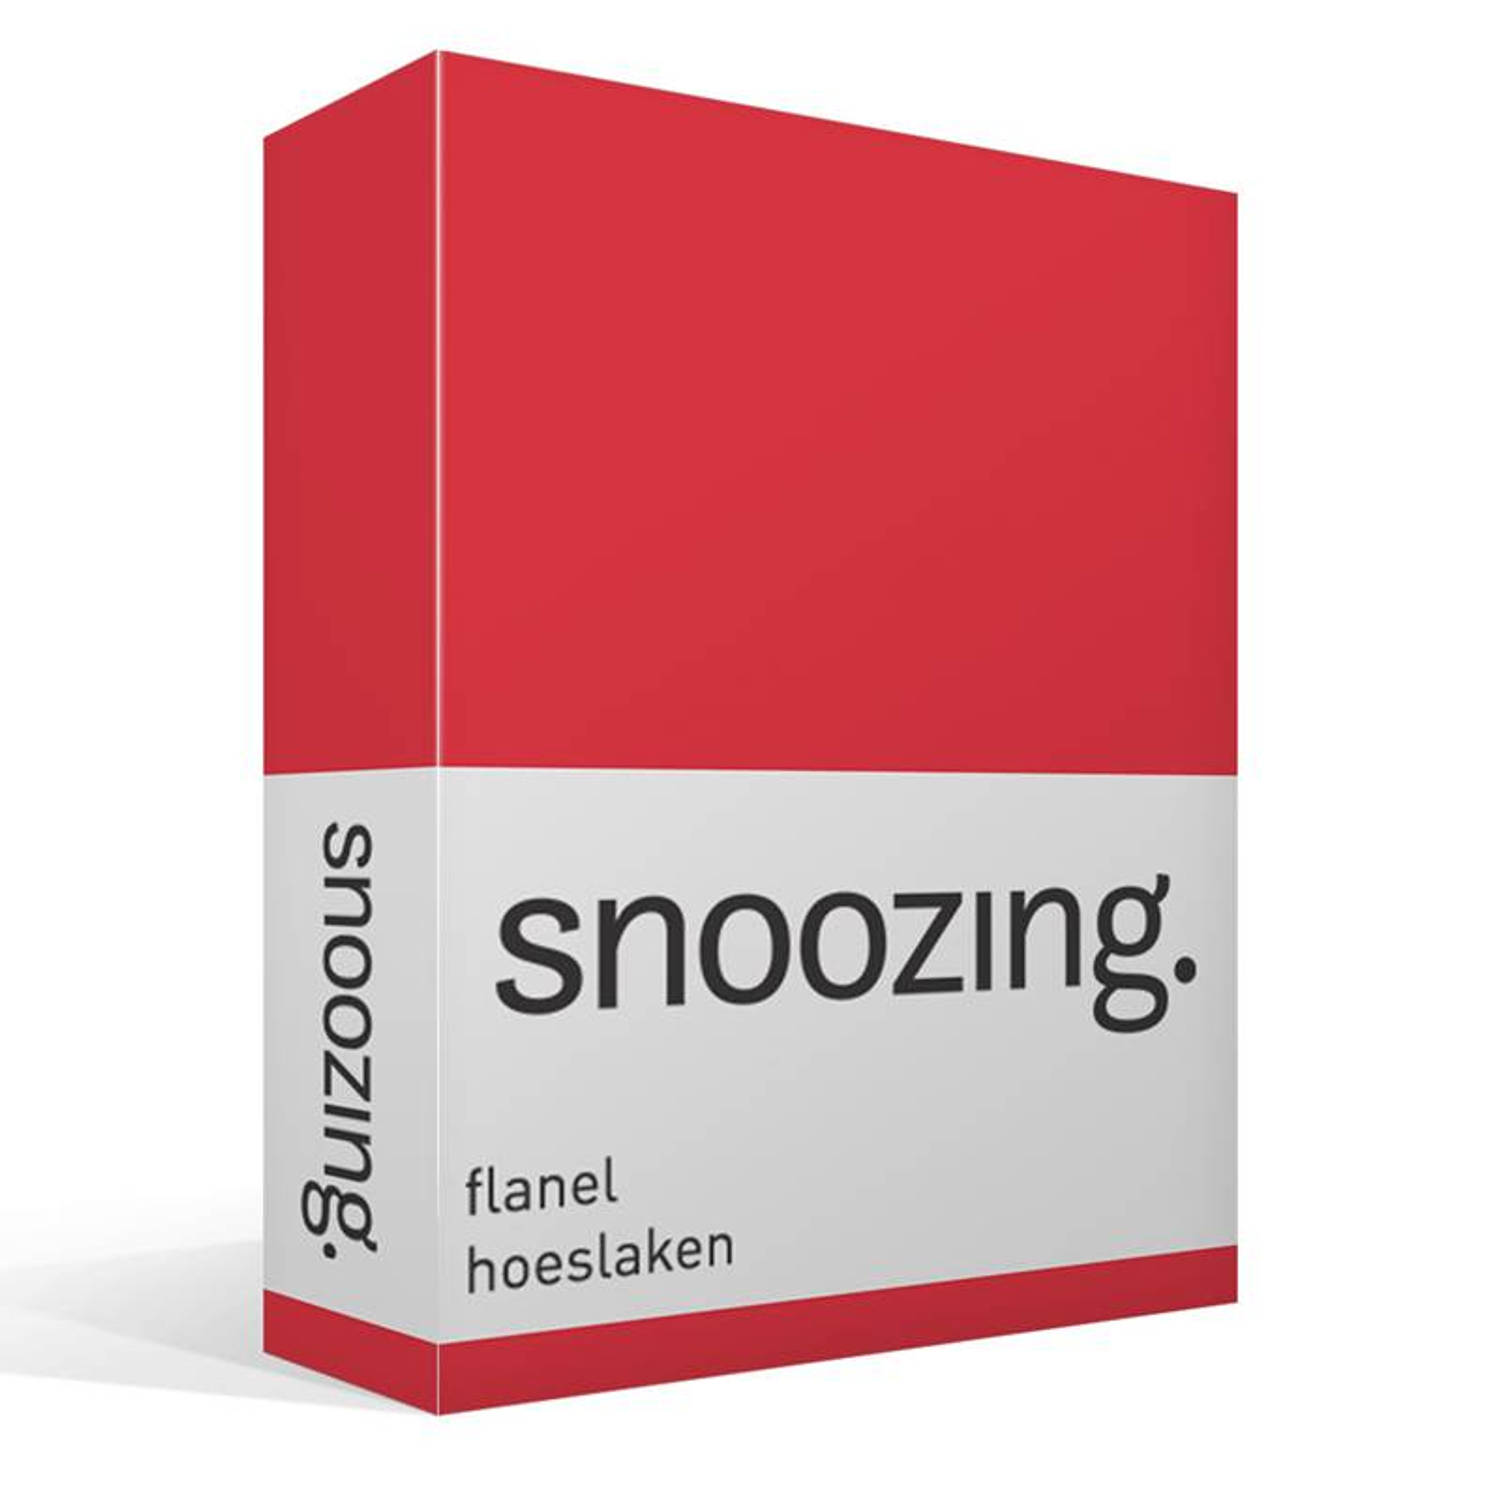 Snoozing flanel hoeslaken - 2-persoons (140x200 cm)